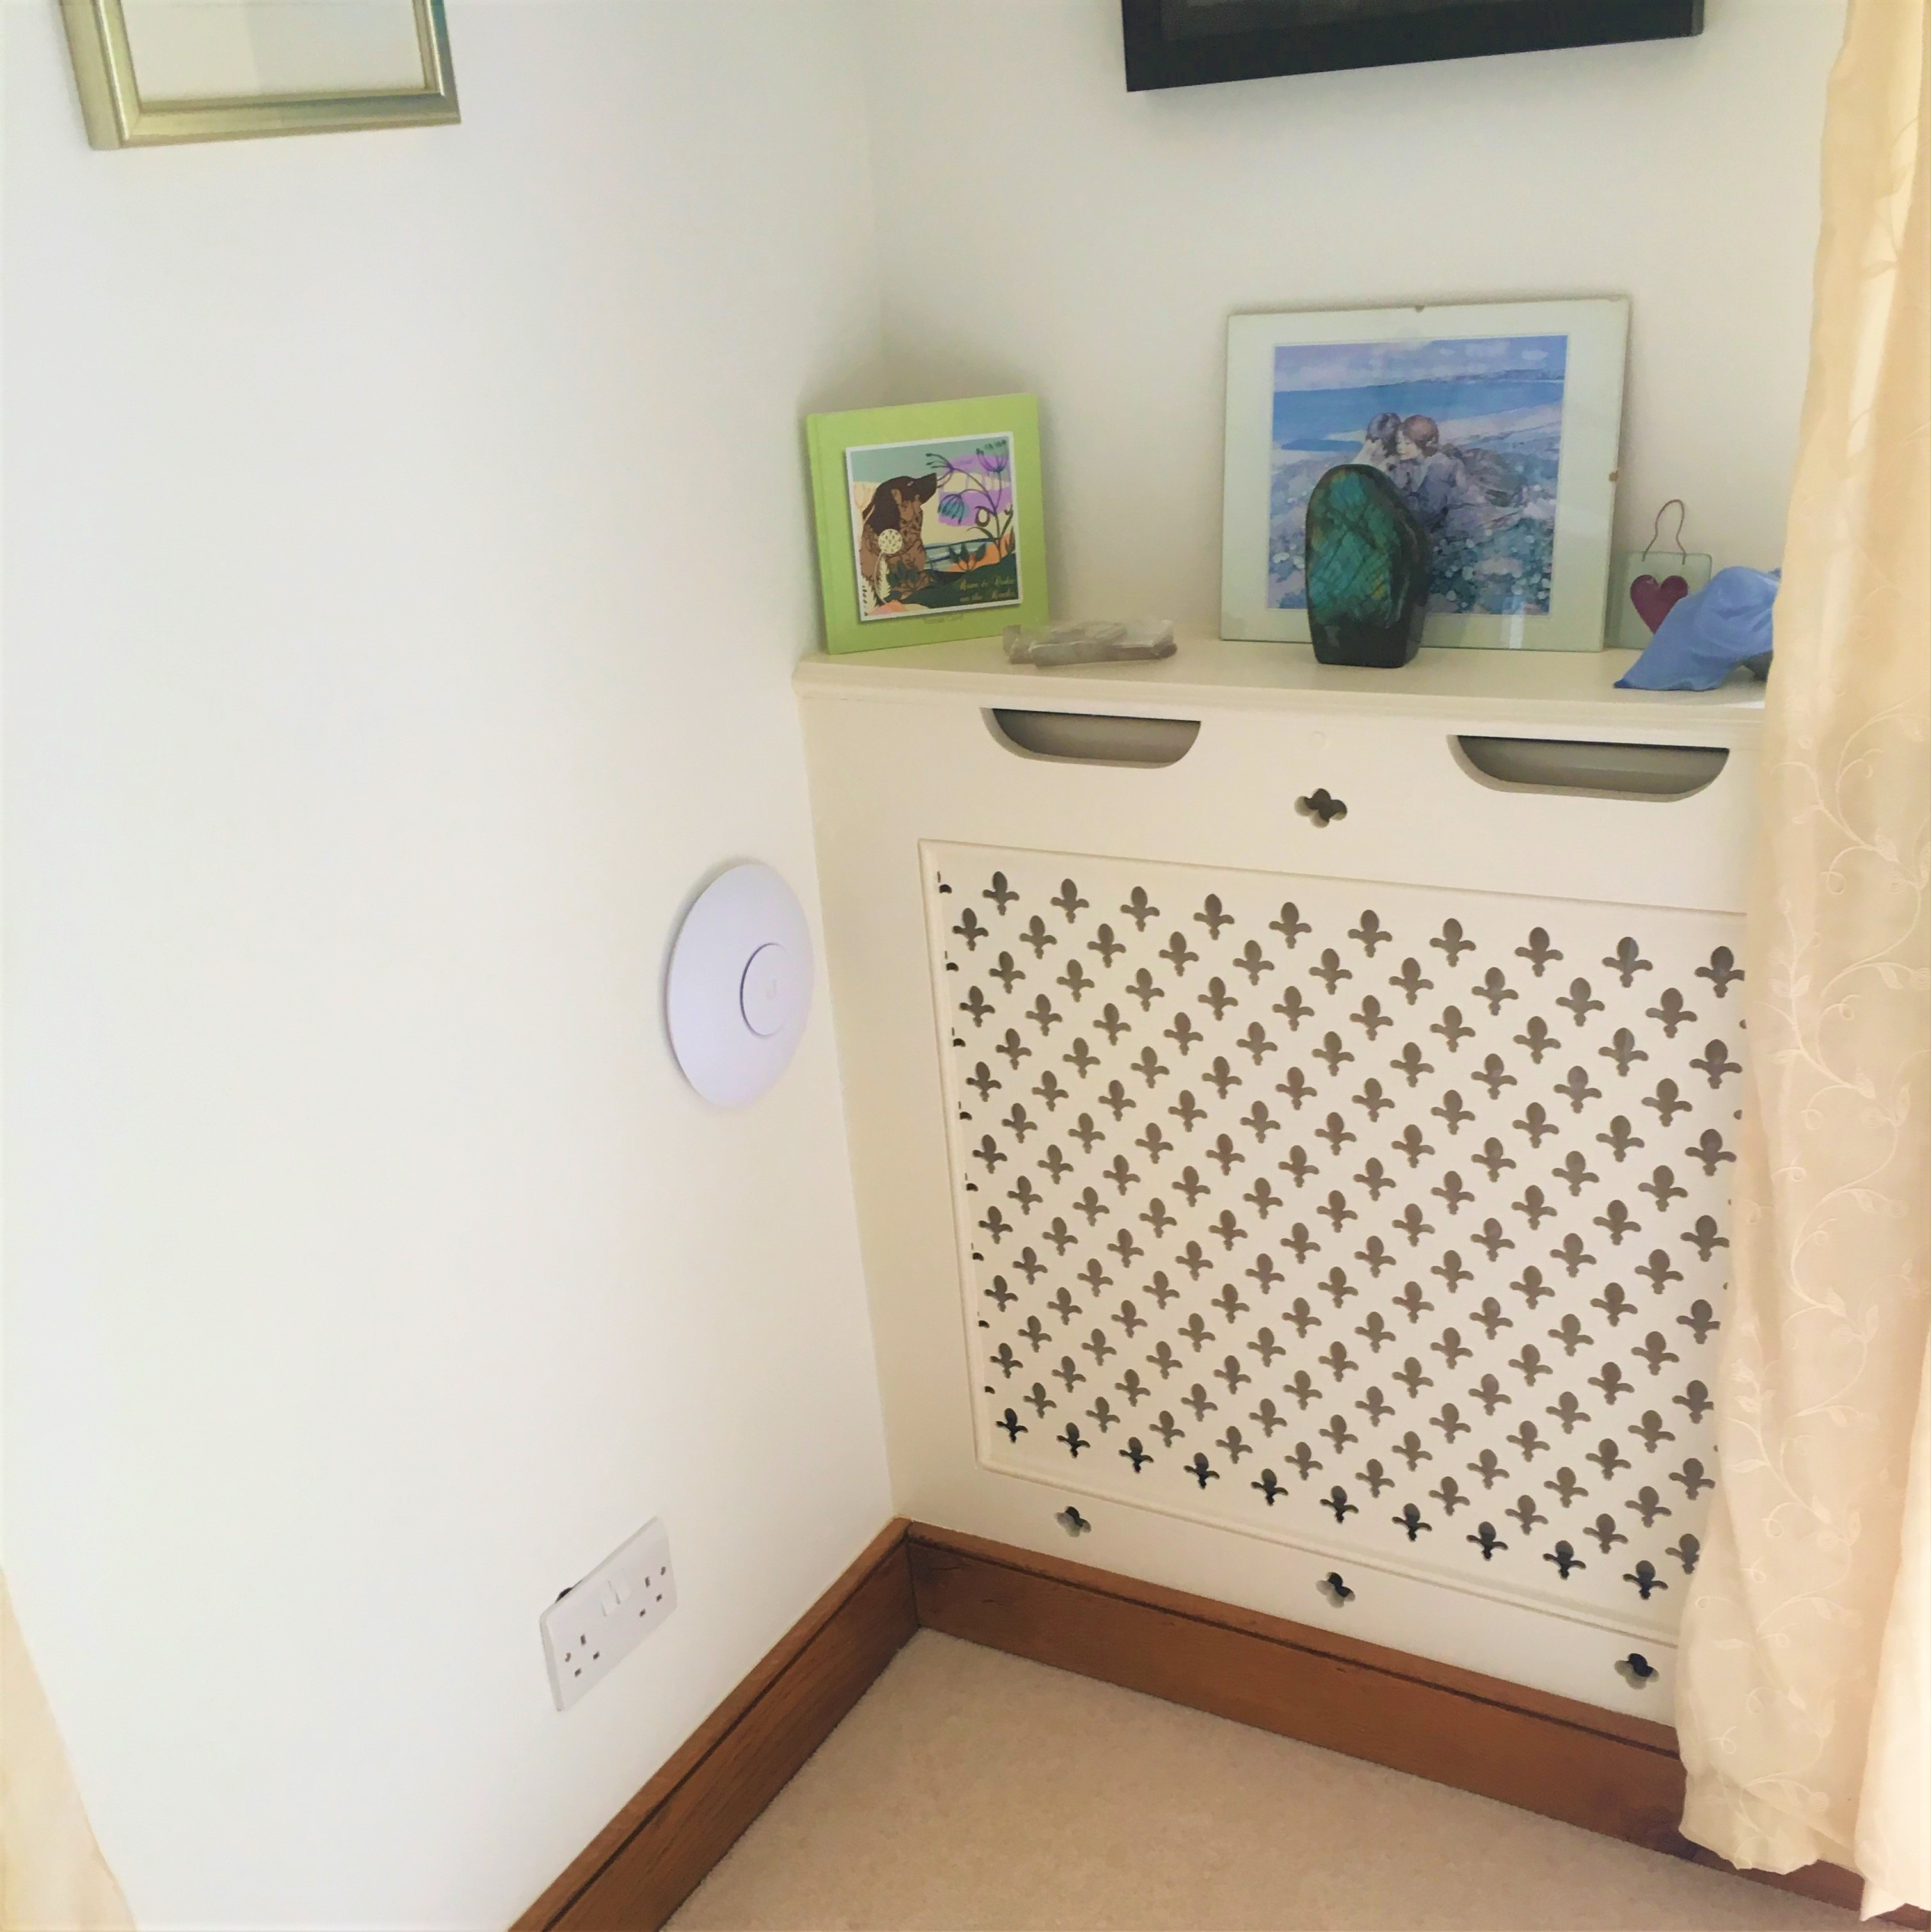 WiFi access point installed in a home setting